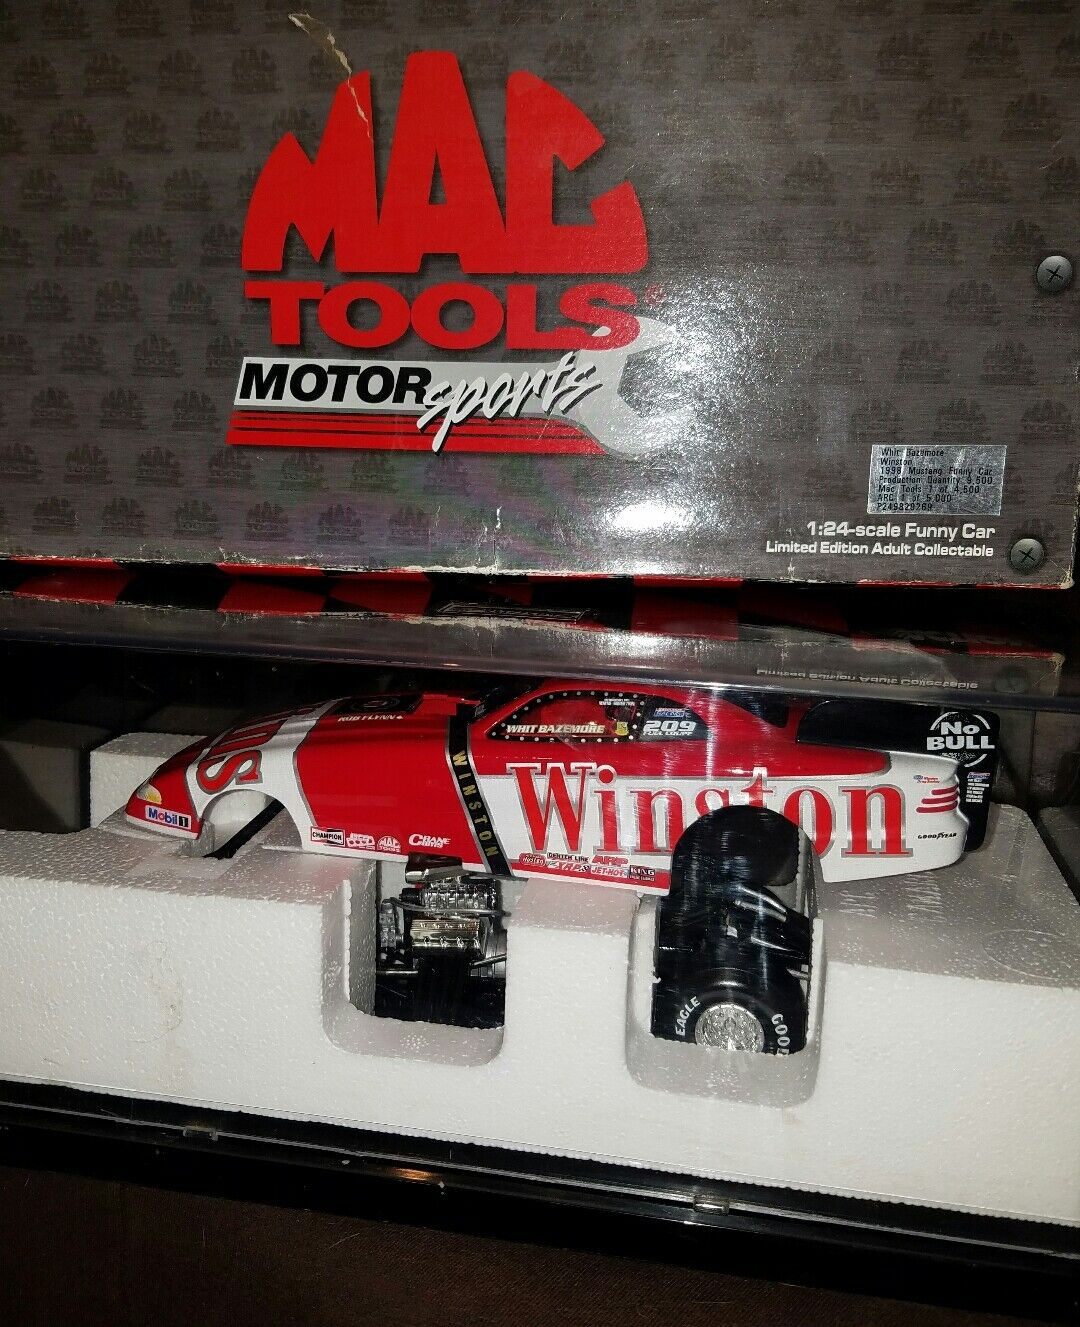 1998 Mustang Winston Funny Car 1 24 scale